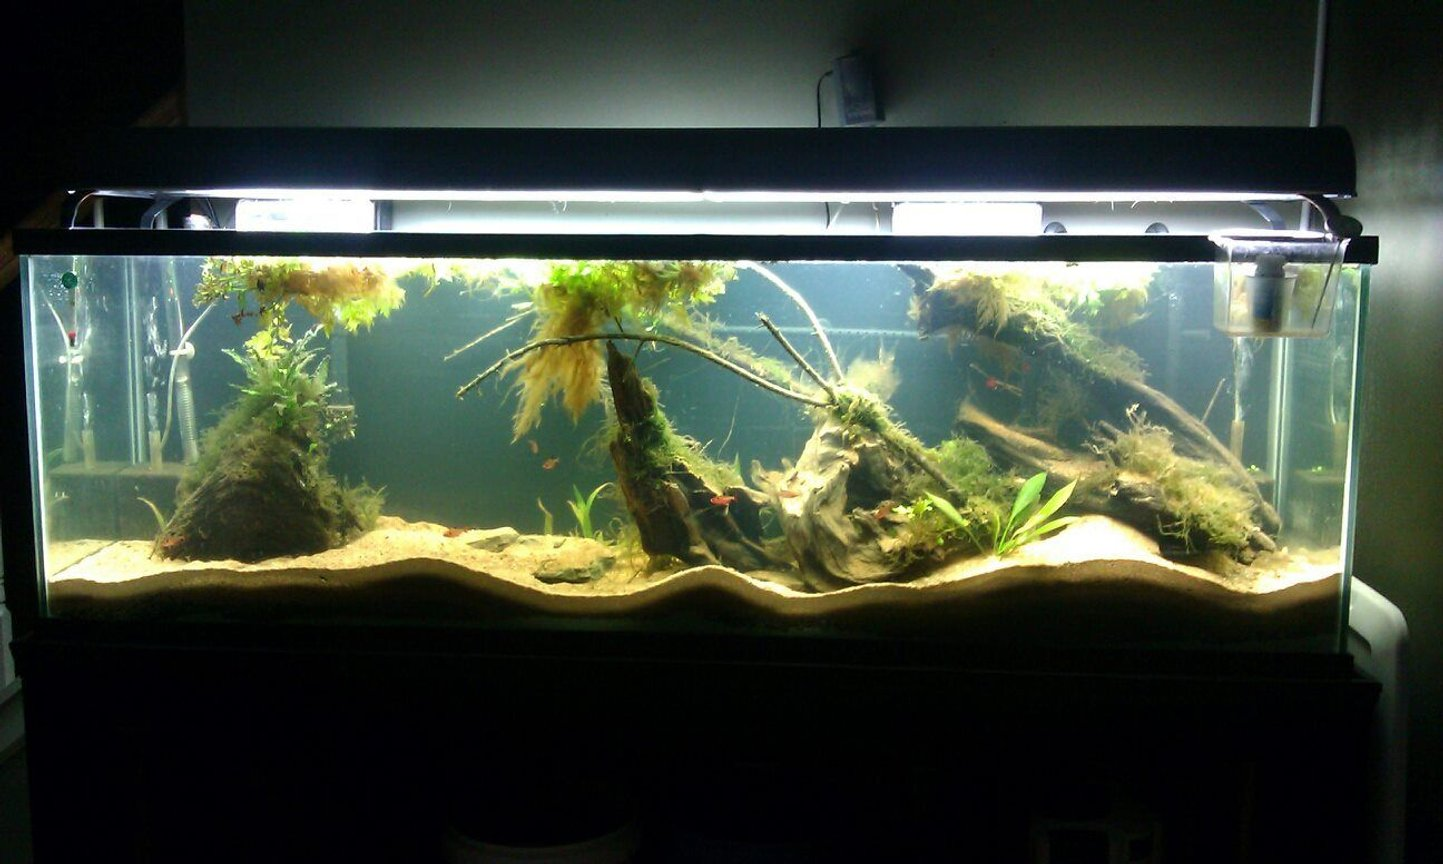 125 gallons planted tank (mostly live plants and fish) - Newly setup Amazon 125 Gallon. It was just setup on 9/11/12.